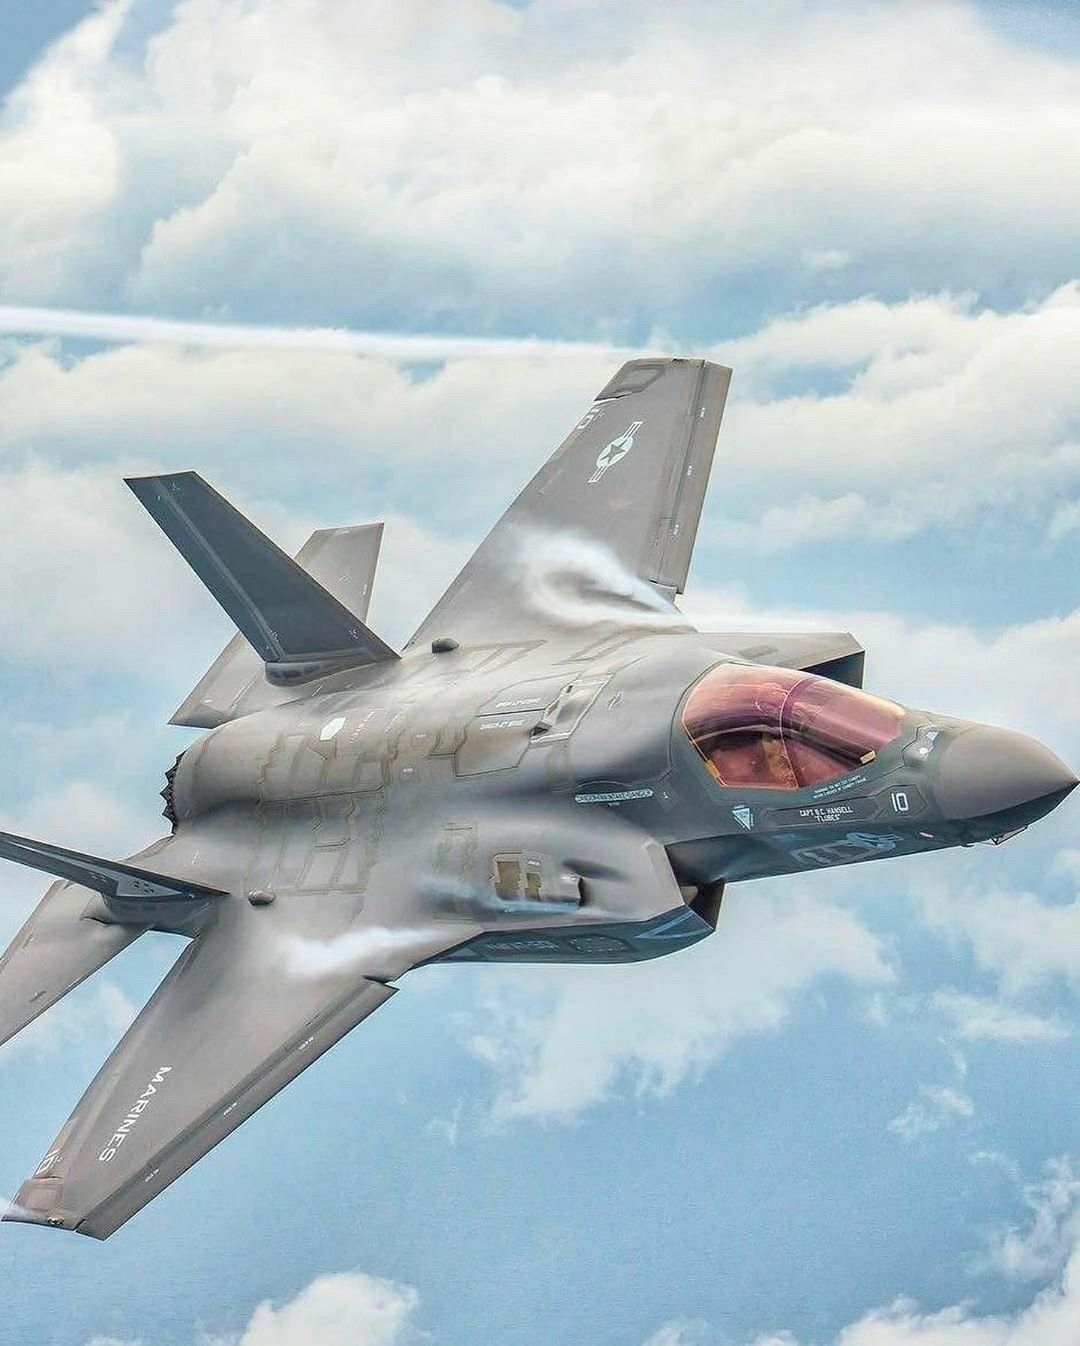 Pin by Cbaw Militar on Military aircraft in 2020 Us